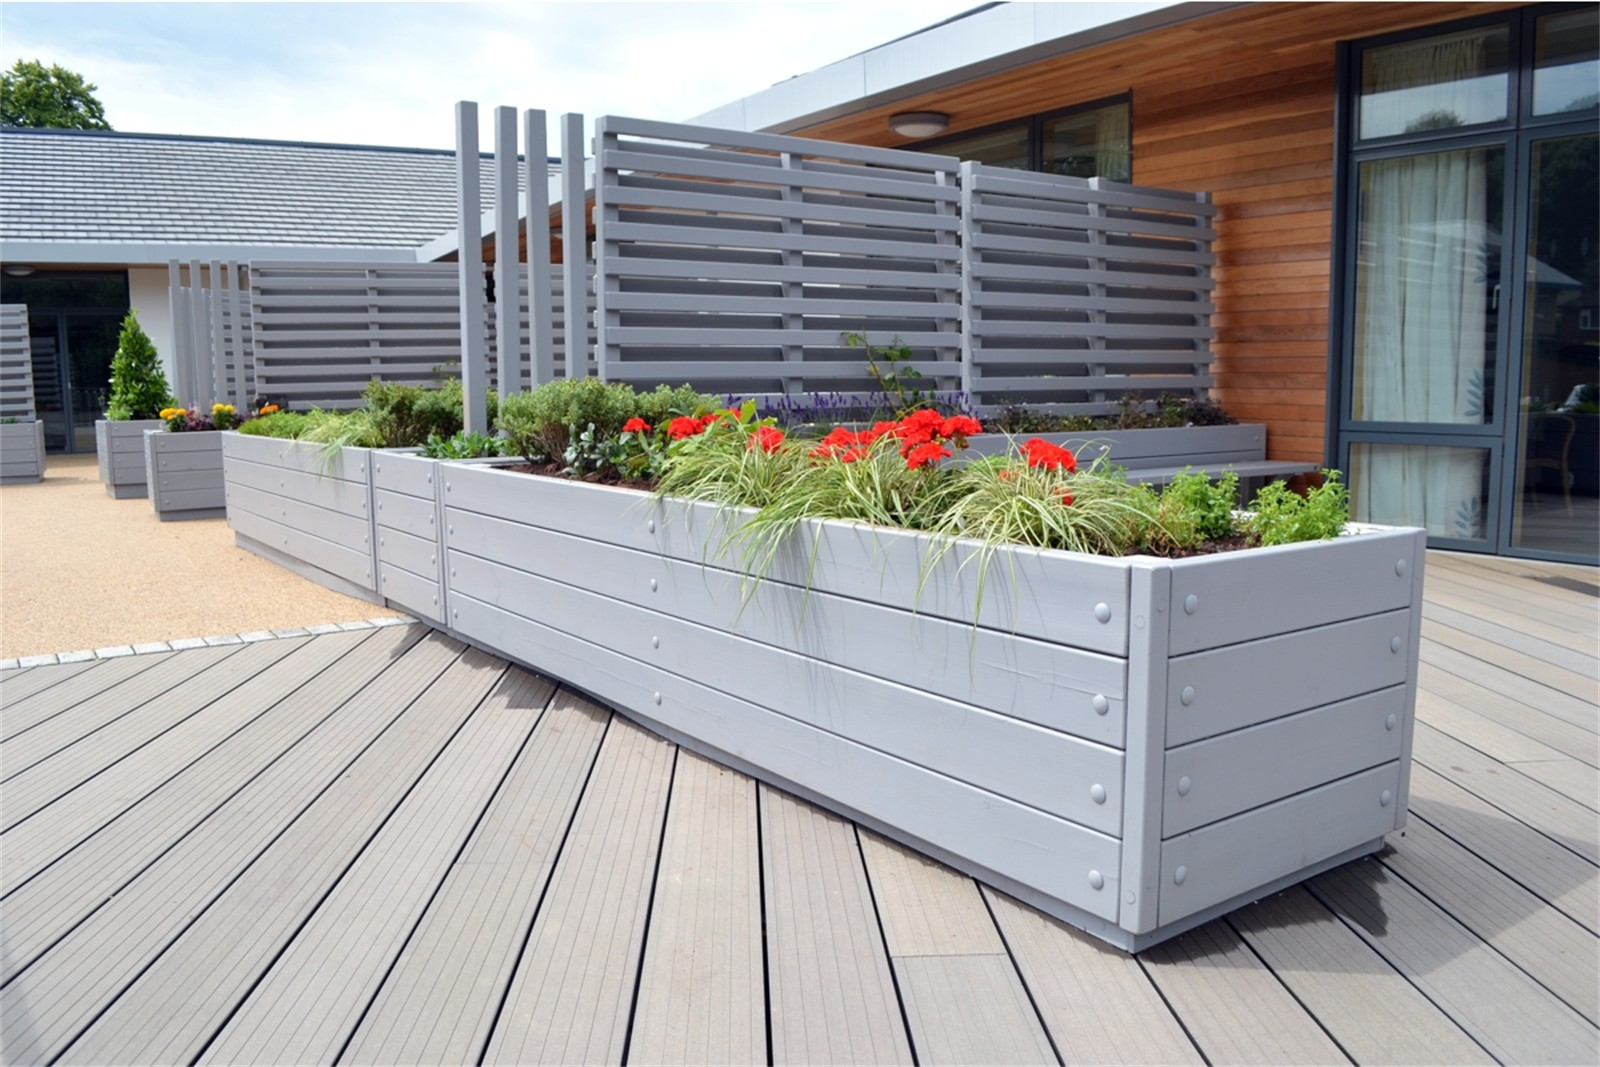 40p01 - Grenadier long barrier planters with slatted screens